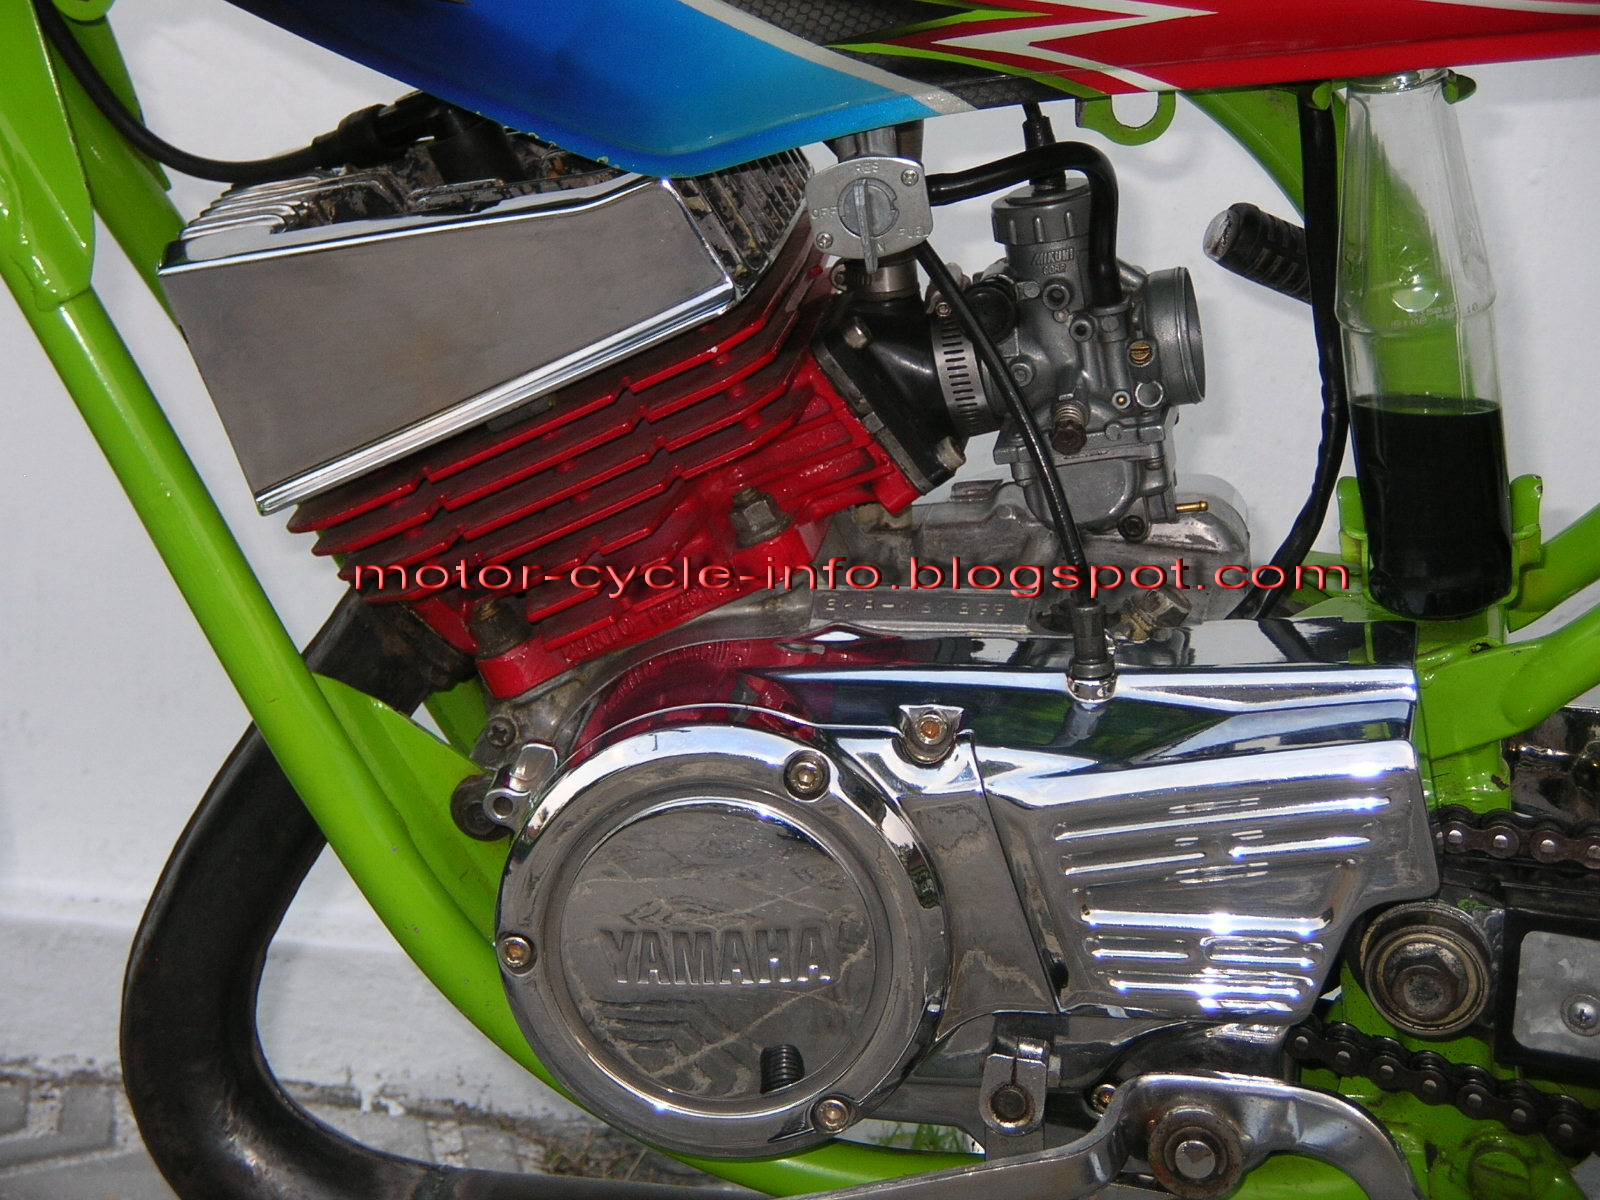 Modif Motor Yamaha Force 1